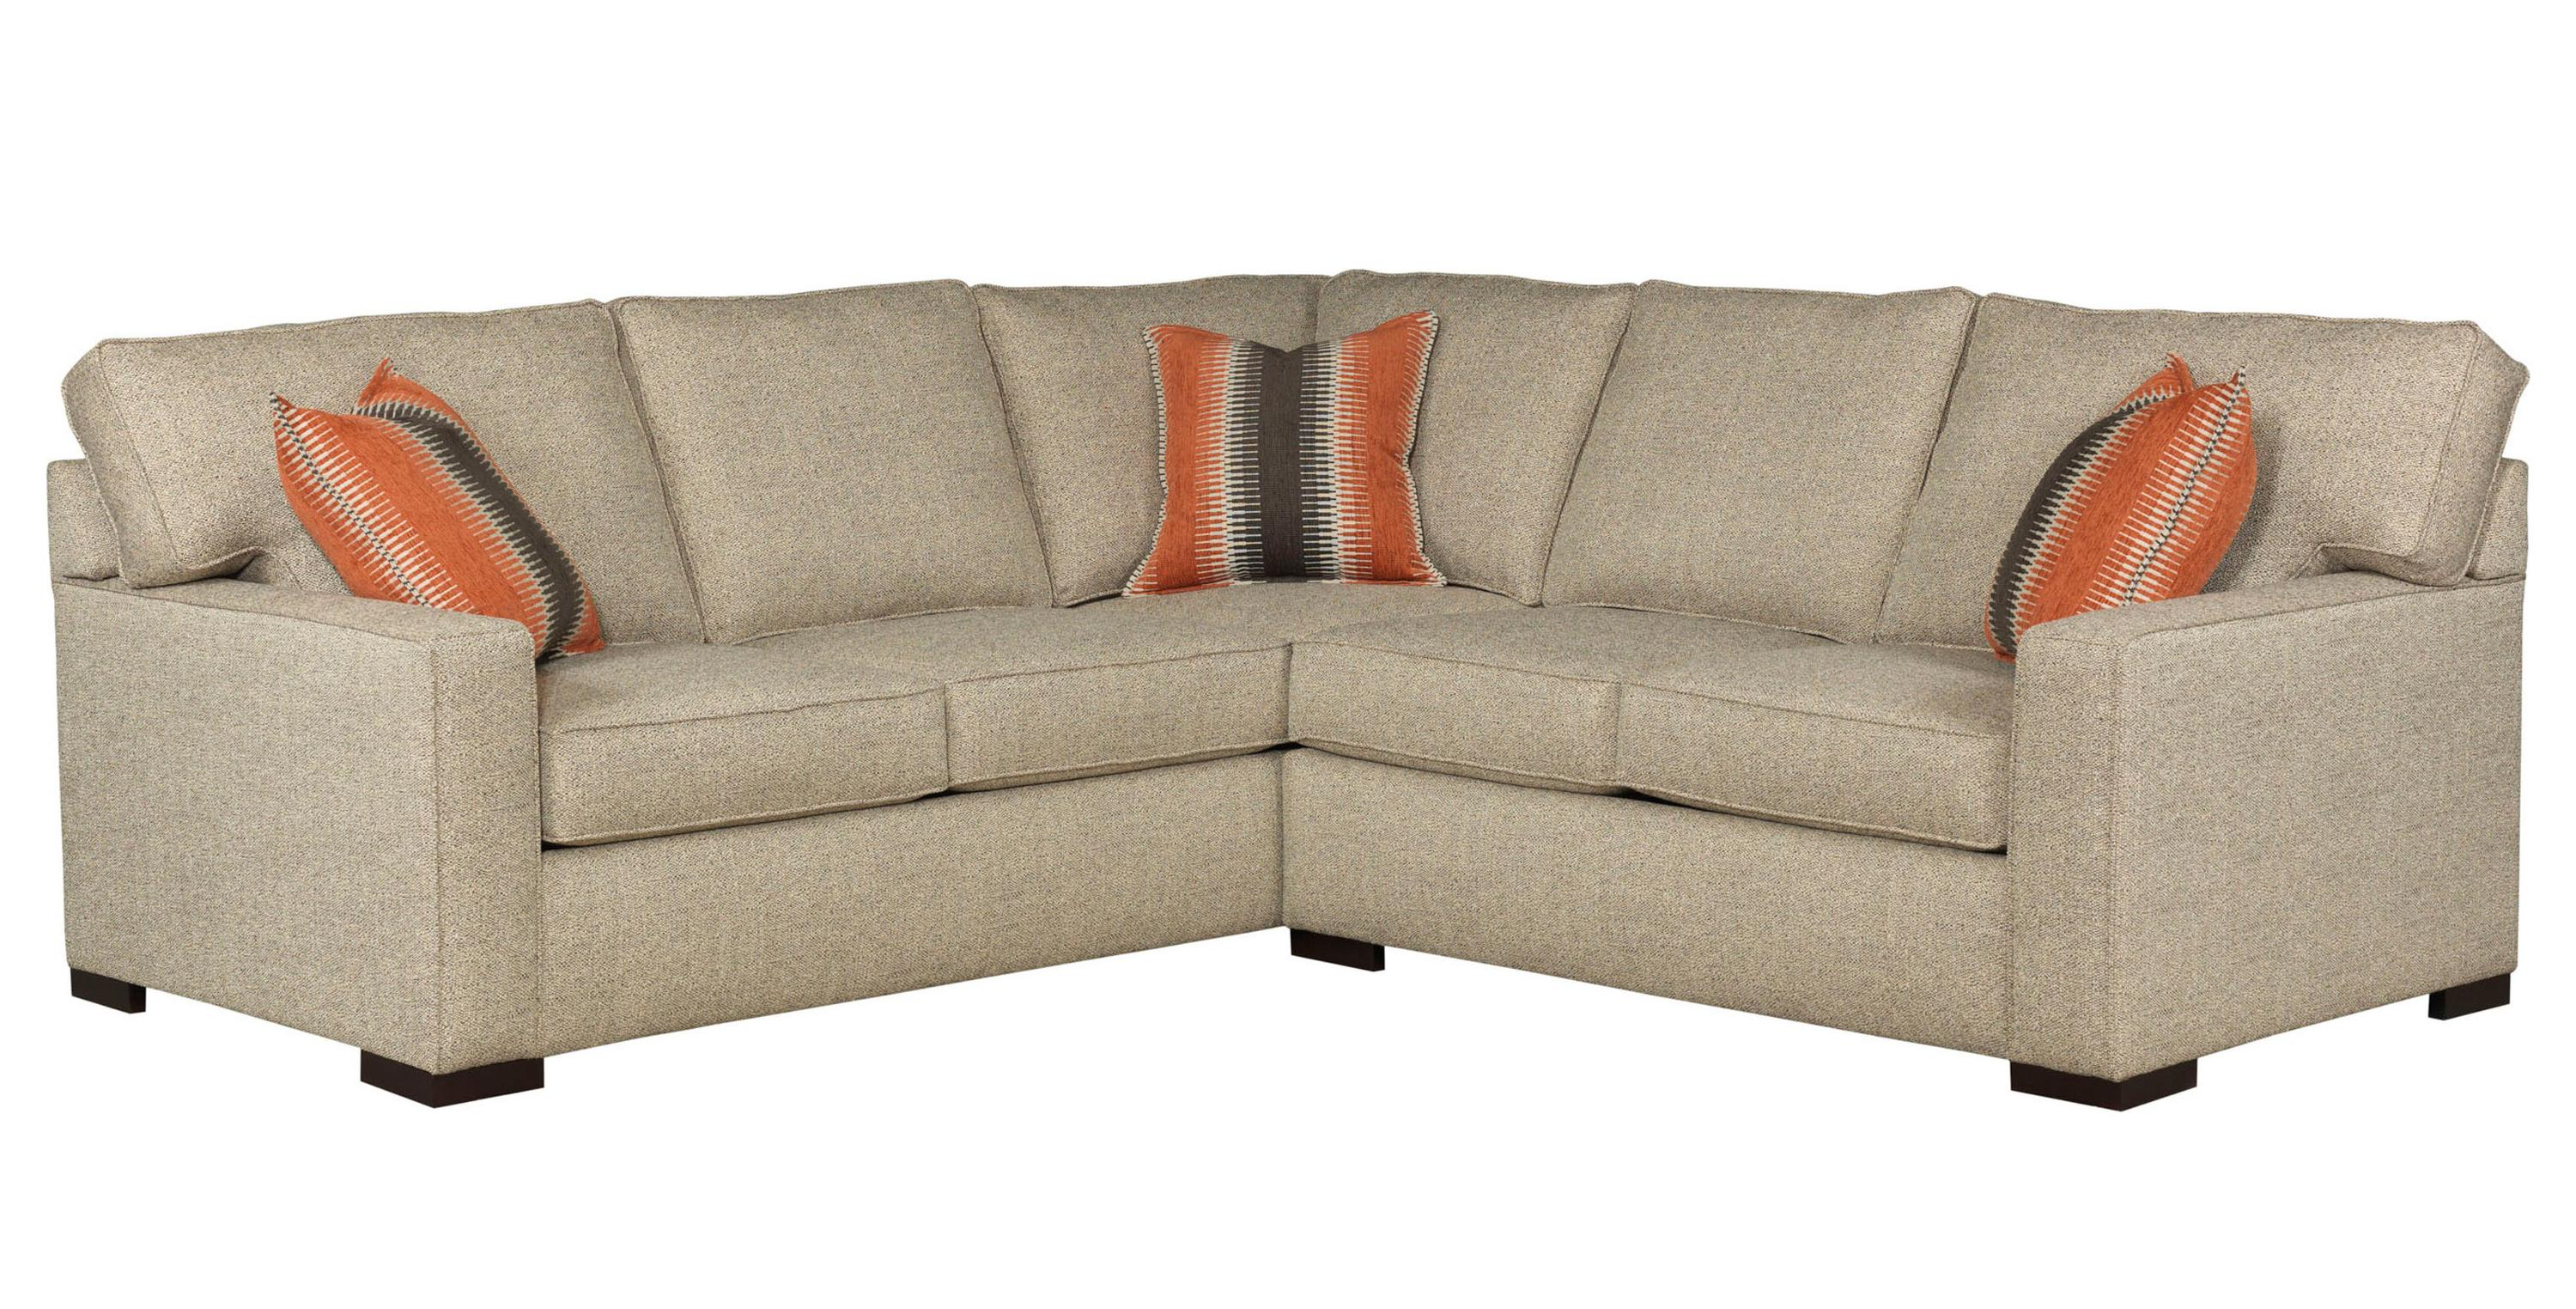 Broyhill Furniture Raphael Contemporary Two Piece Sectional Sofa With RAF  Corner Sofa And Track Arms   AHFA   Sofa Sectional Dealer Locator